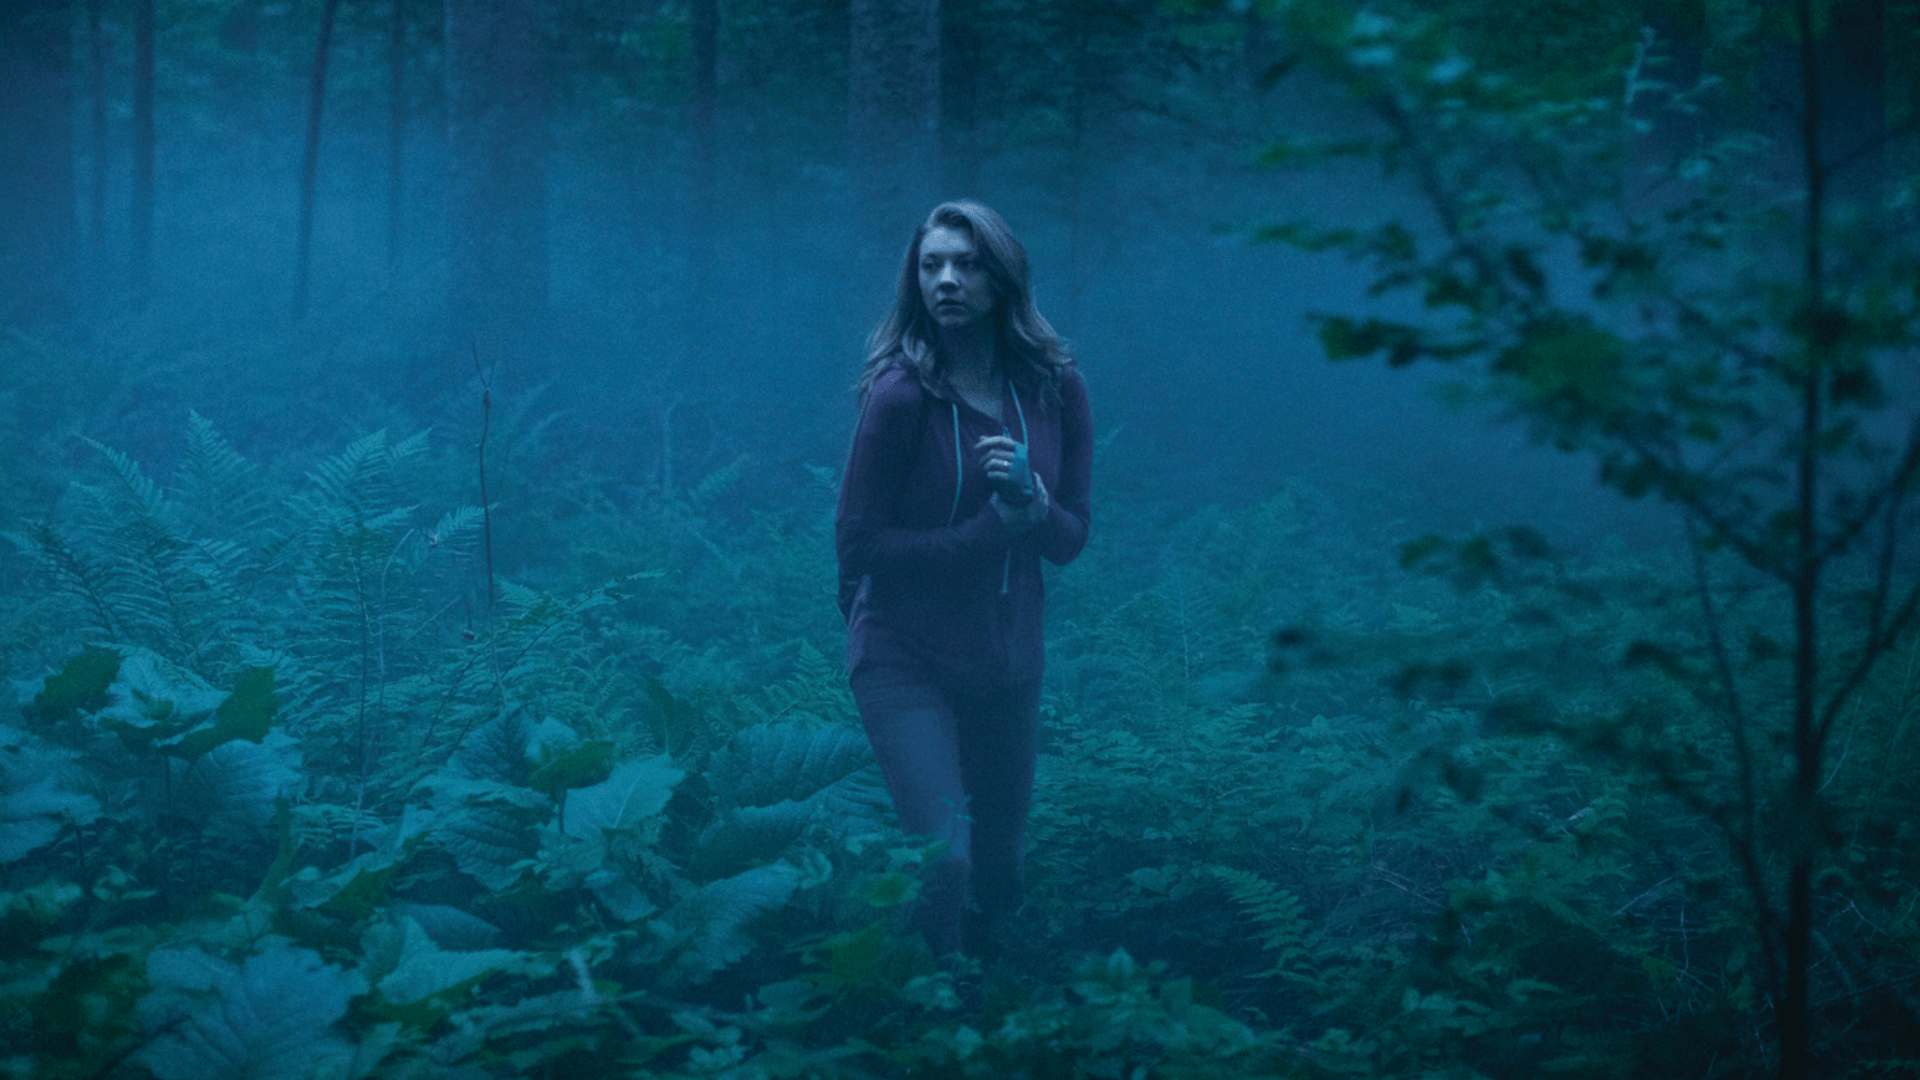 Natalie Dormer in The Forest